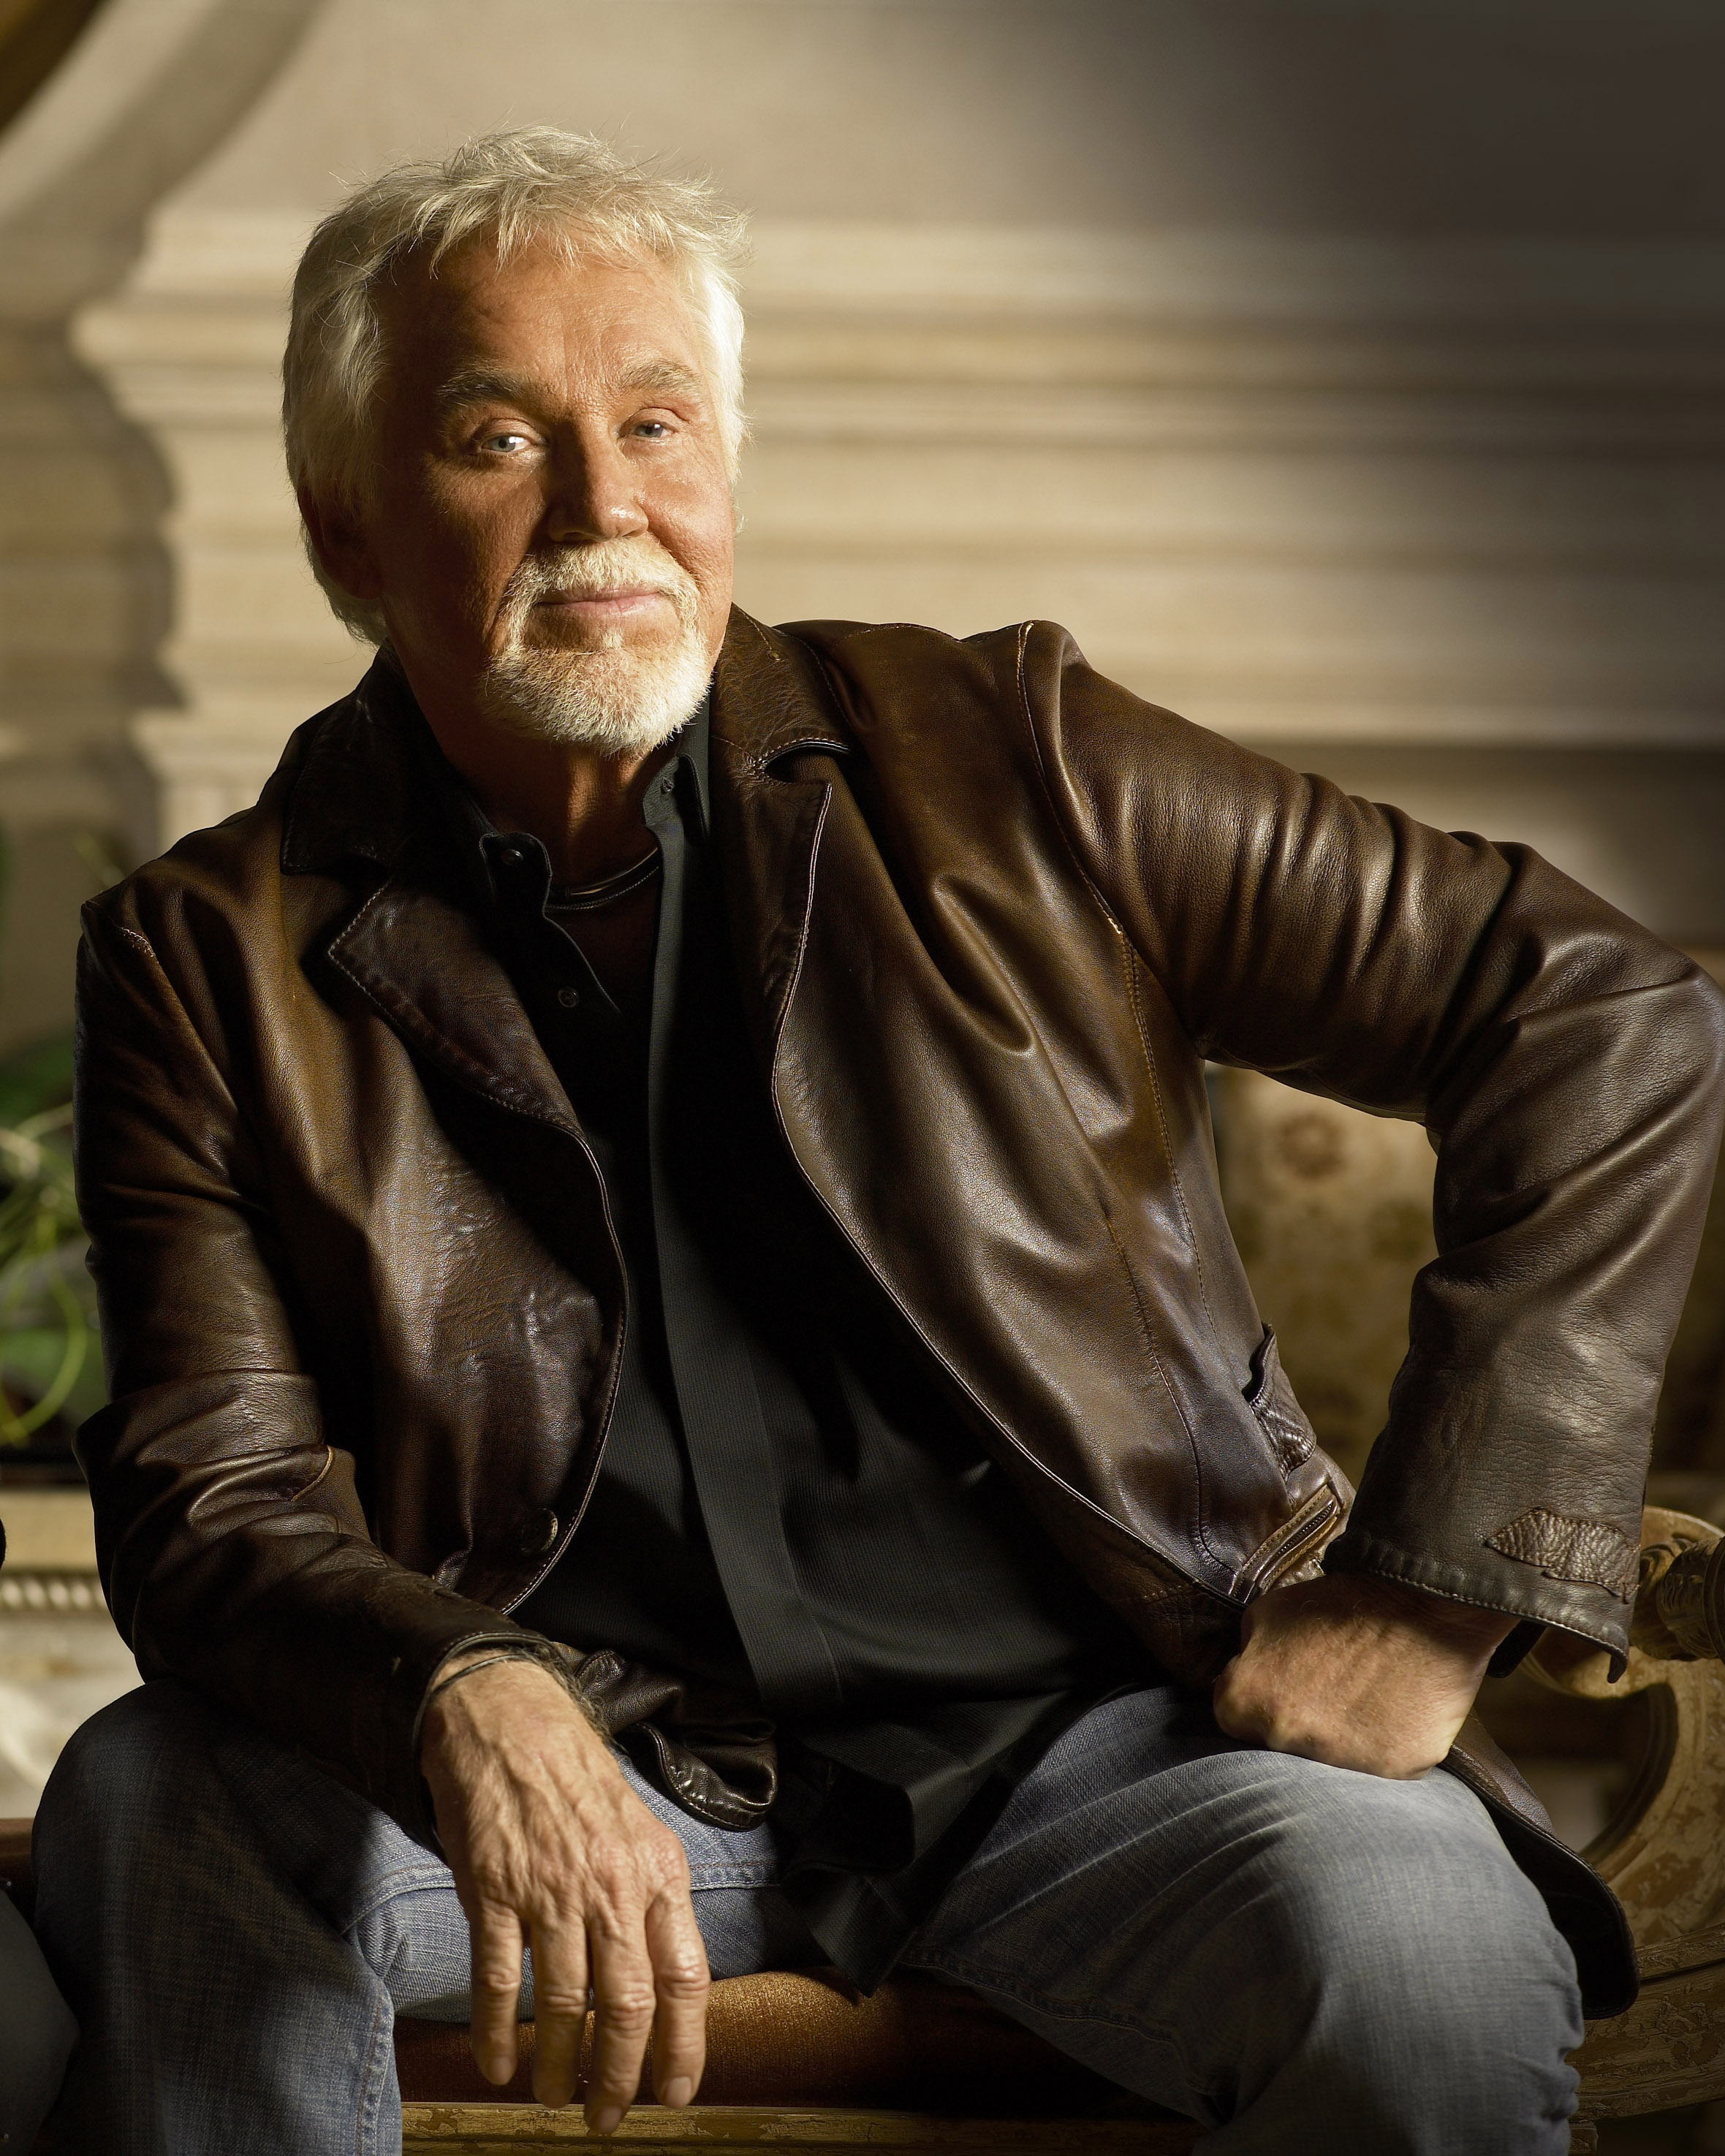 kenny rogers3 - The Origins of Country Music